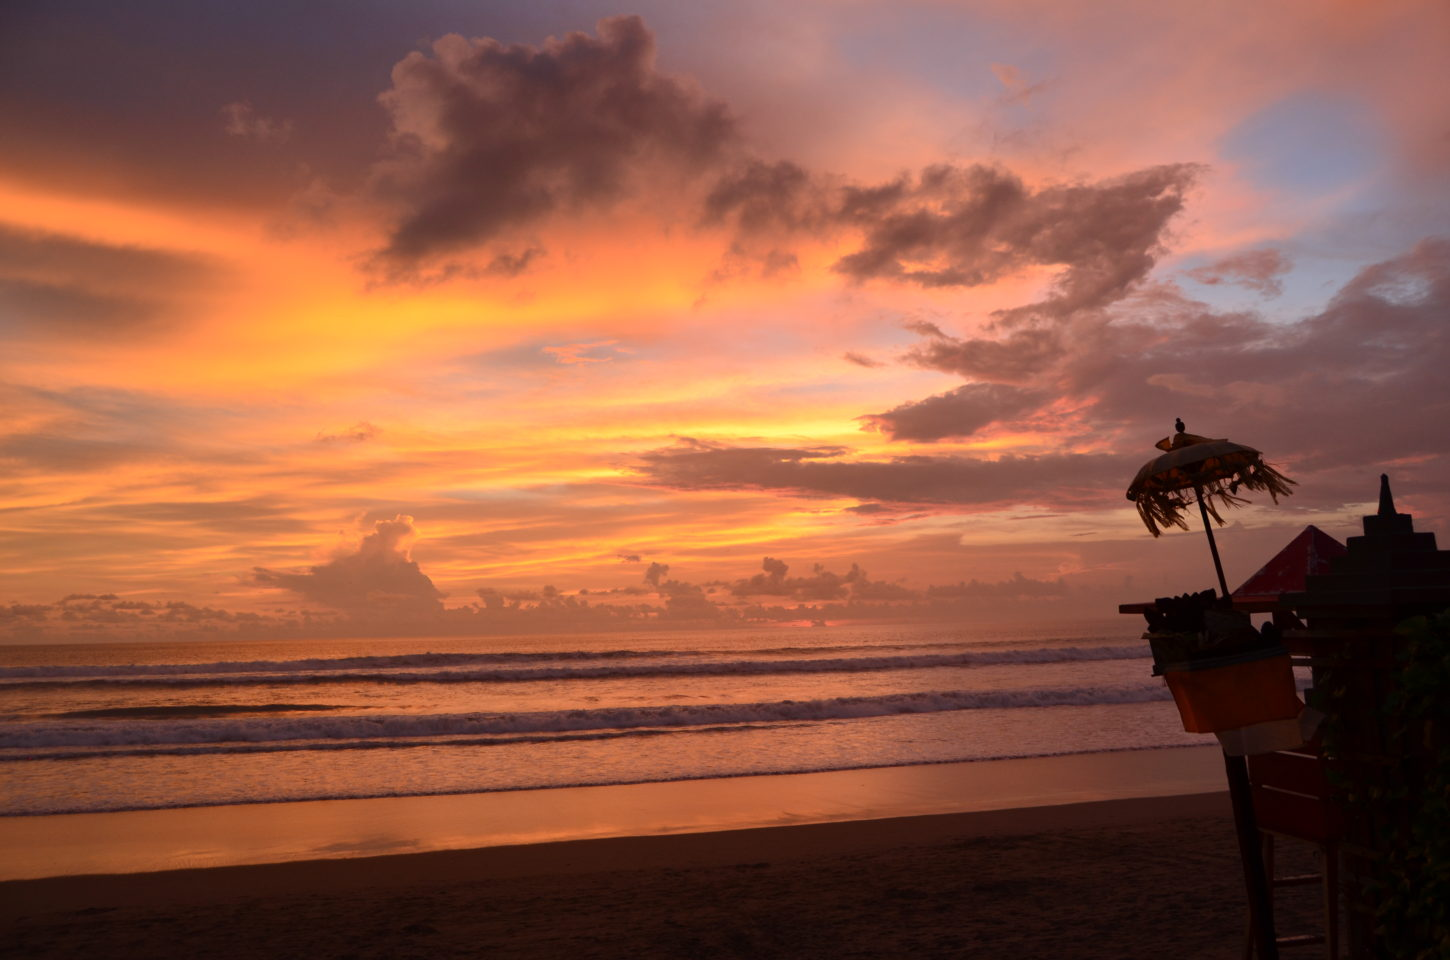 lifestyle redesign  - dsc 0335 - Bali Getaway: Where to Eat and Drink in Seminyak (Part Two)